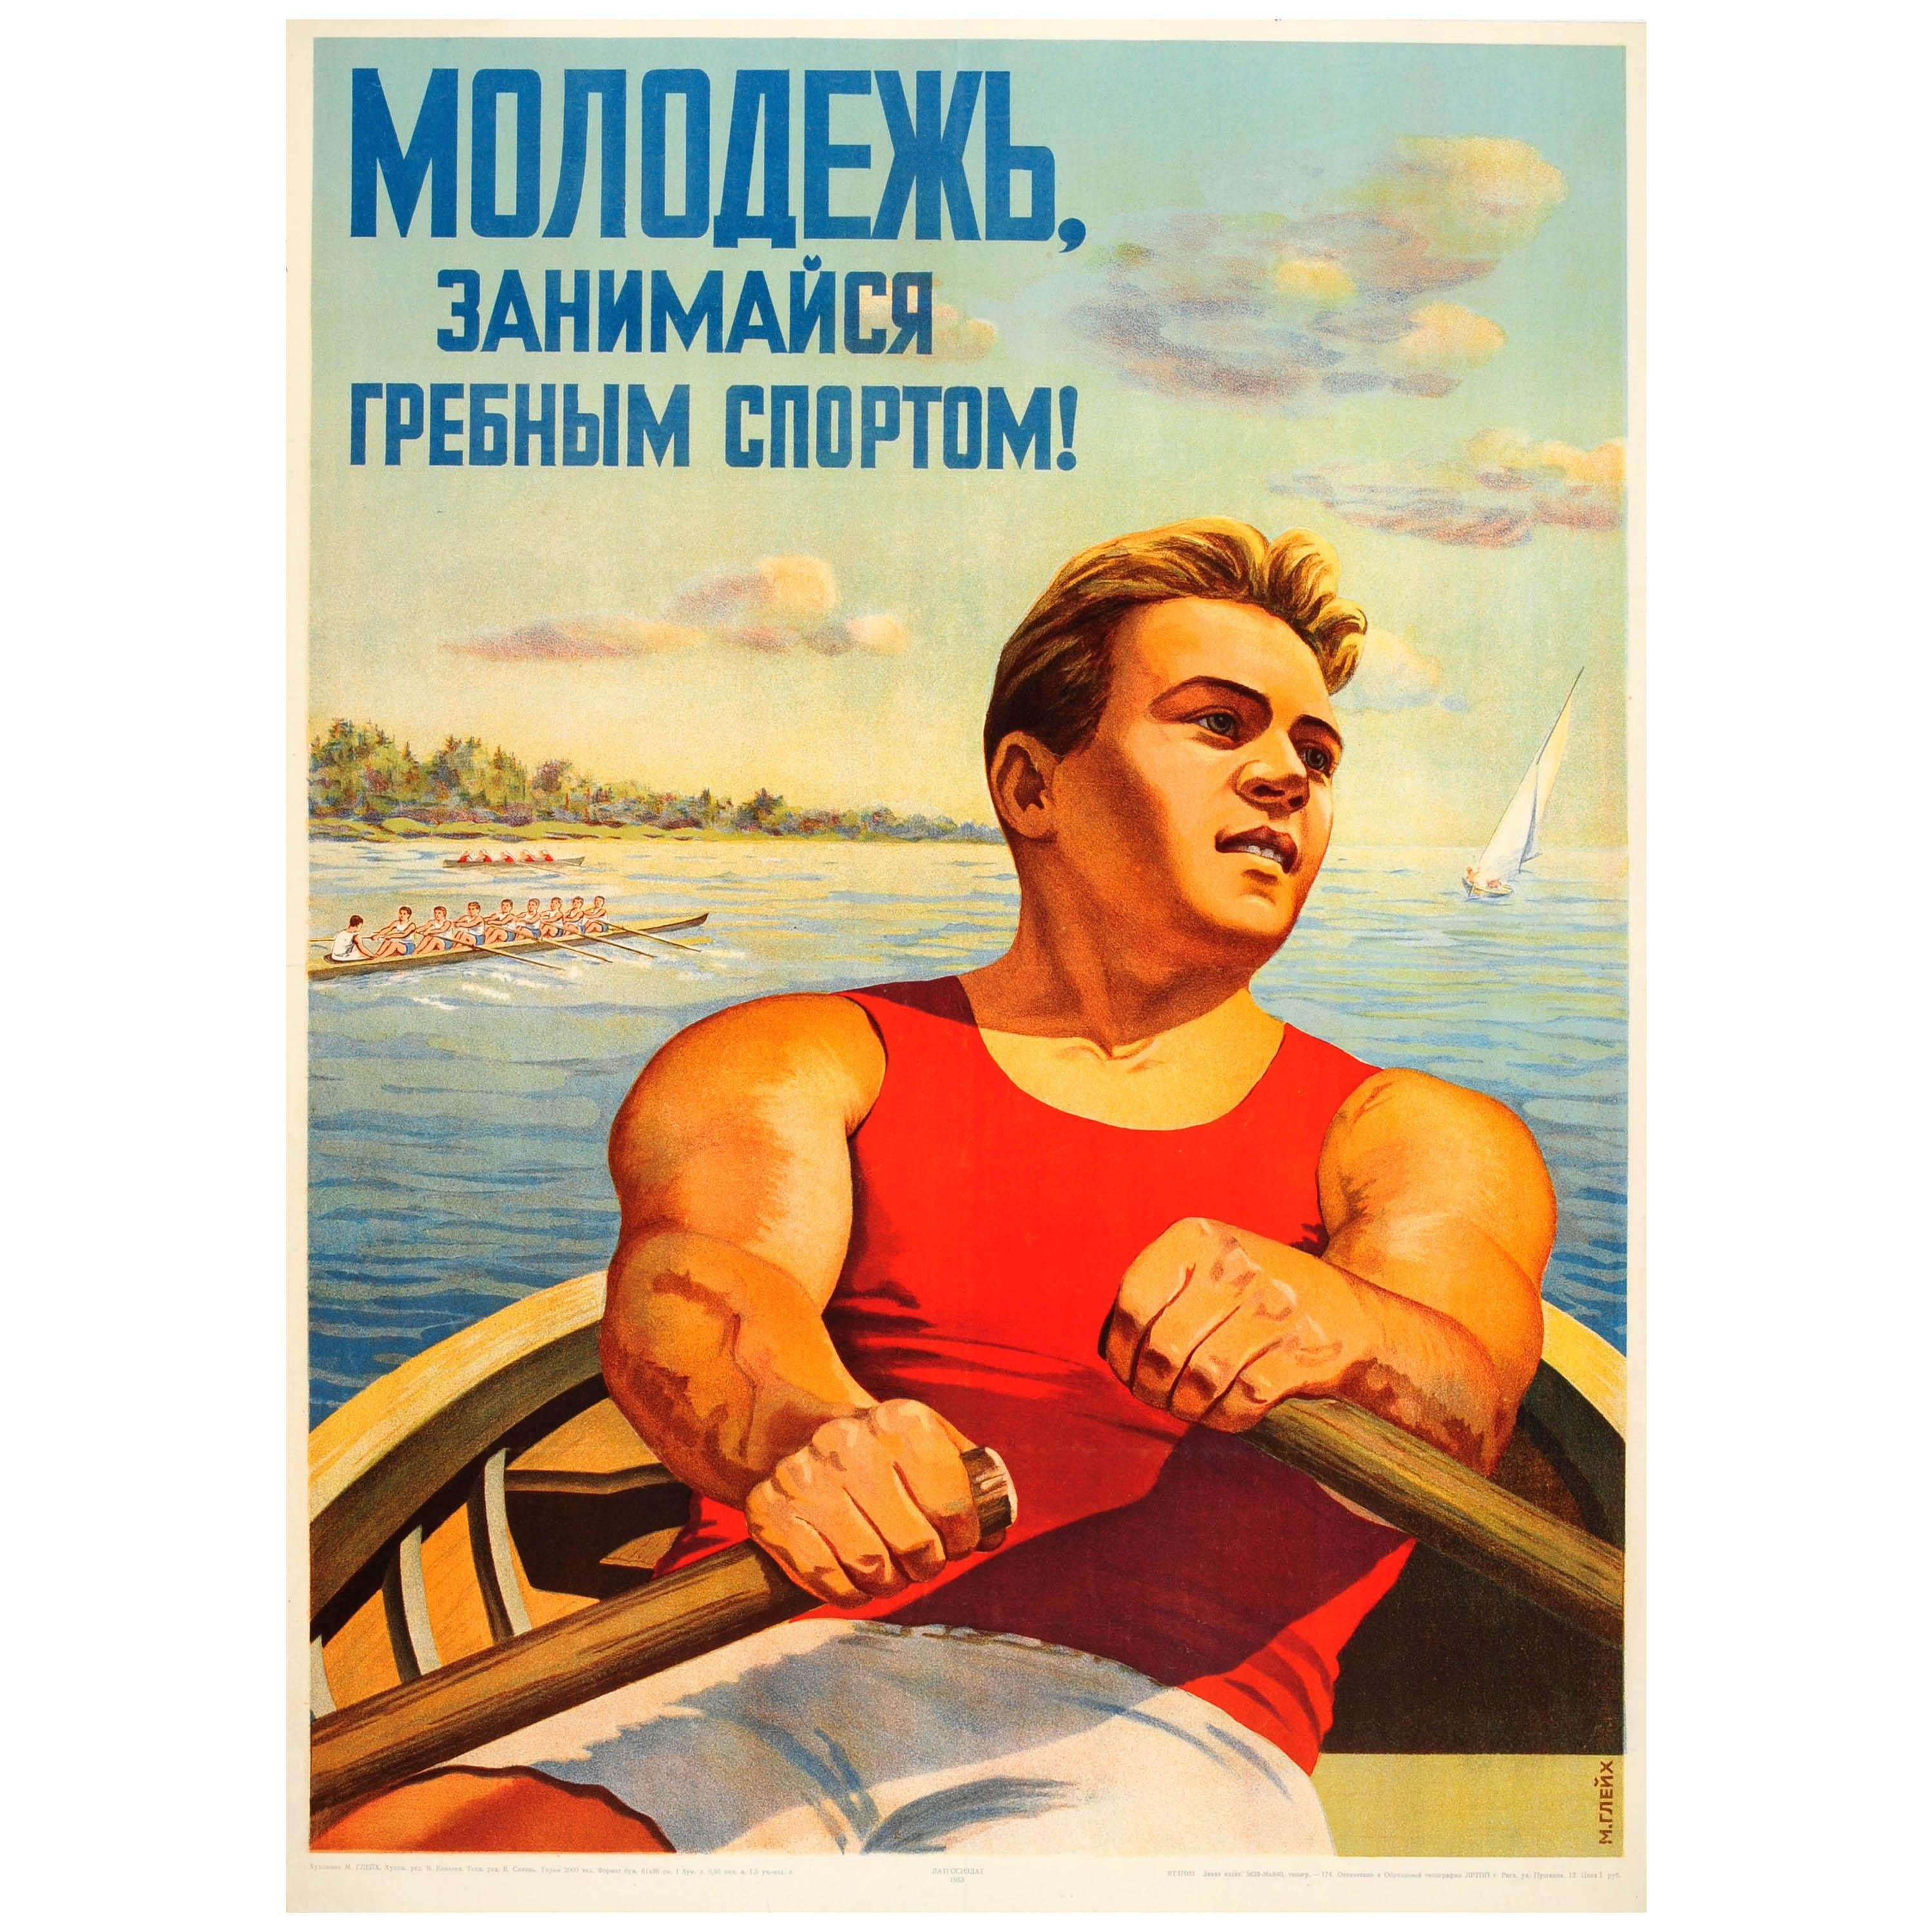 Original Vintage Soviet Water Sport Poster Youth Practice Rowing USSR Propaganda